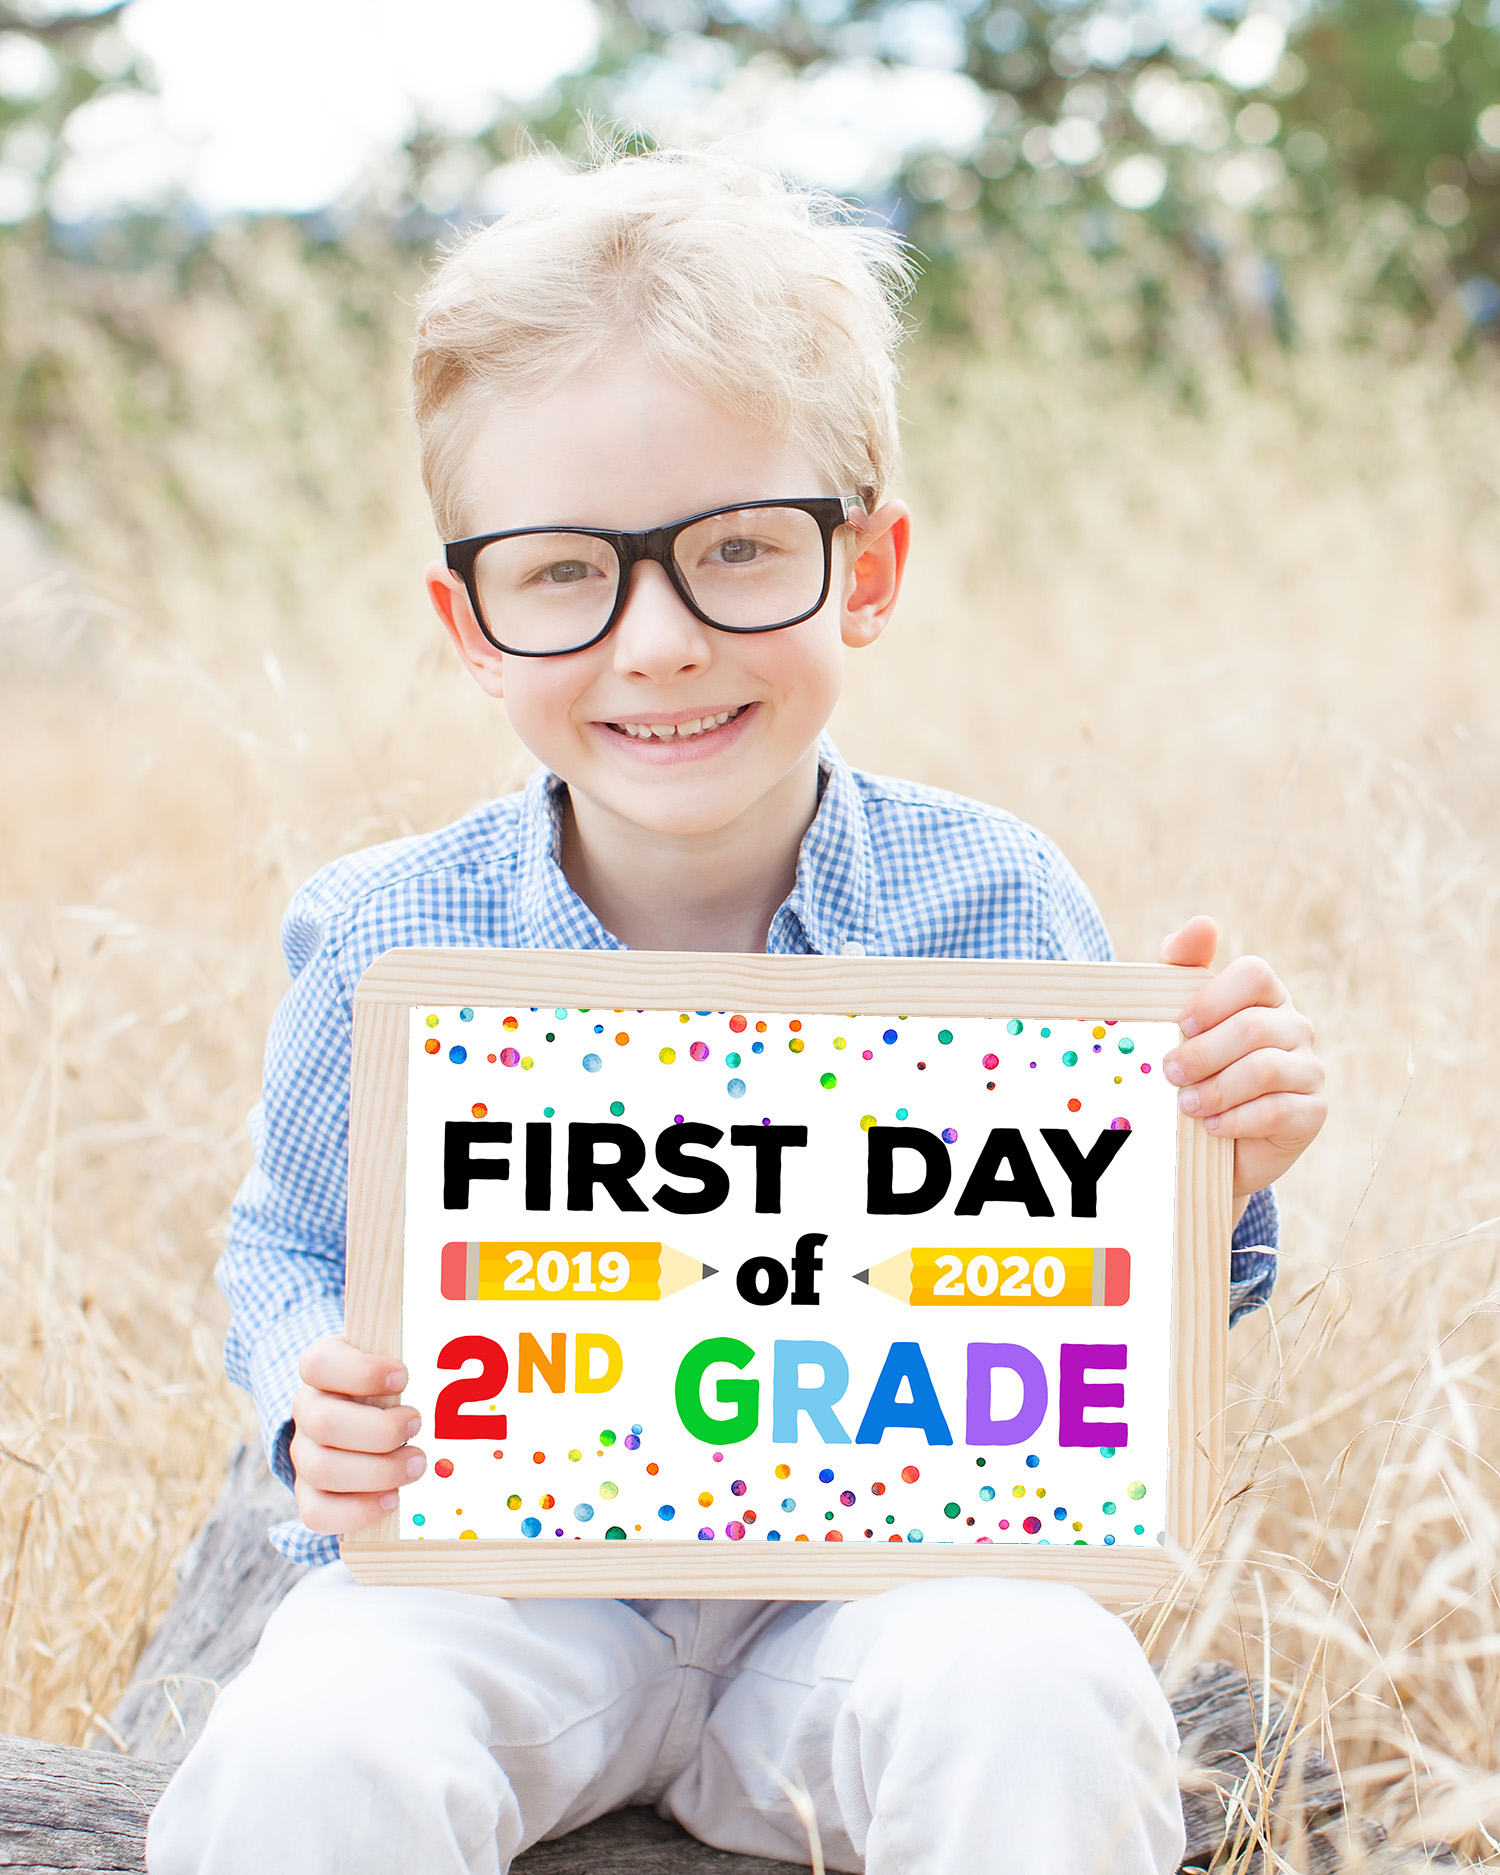 """Free Printable Back to School Signs - cute boy in glasses holding """"First Day of Second Grade"""" sign"""